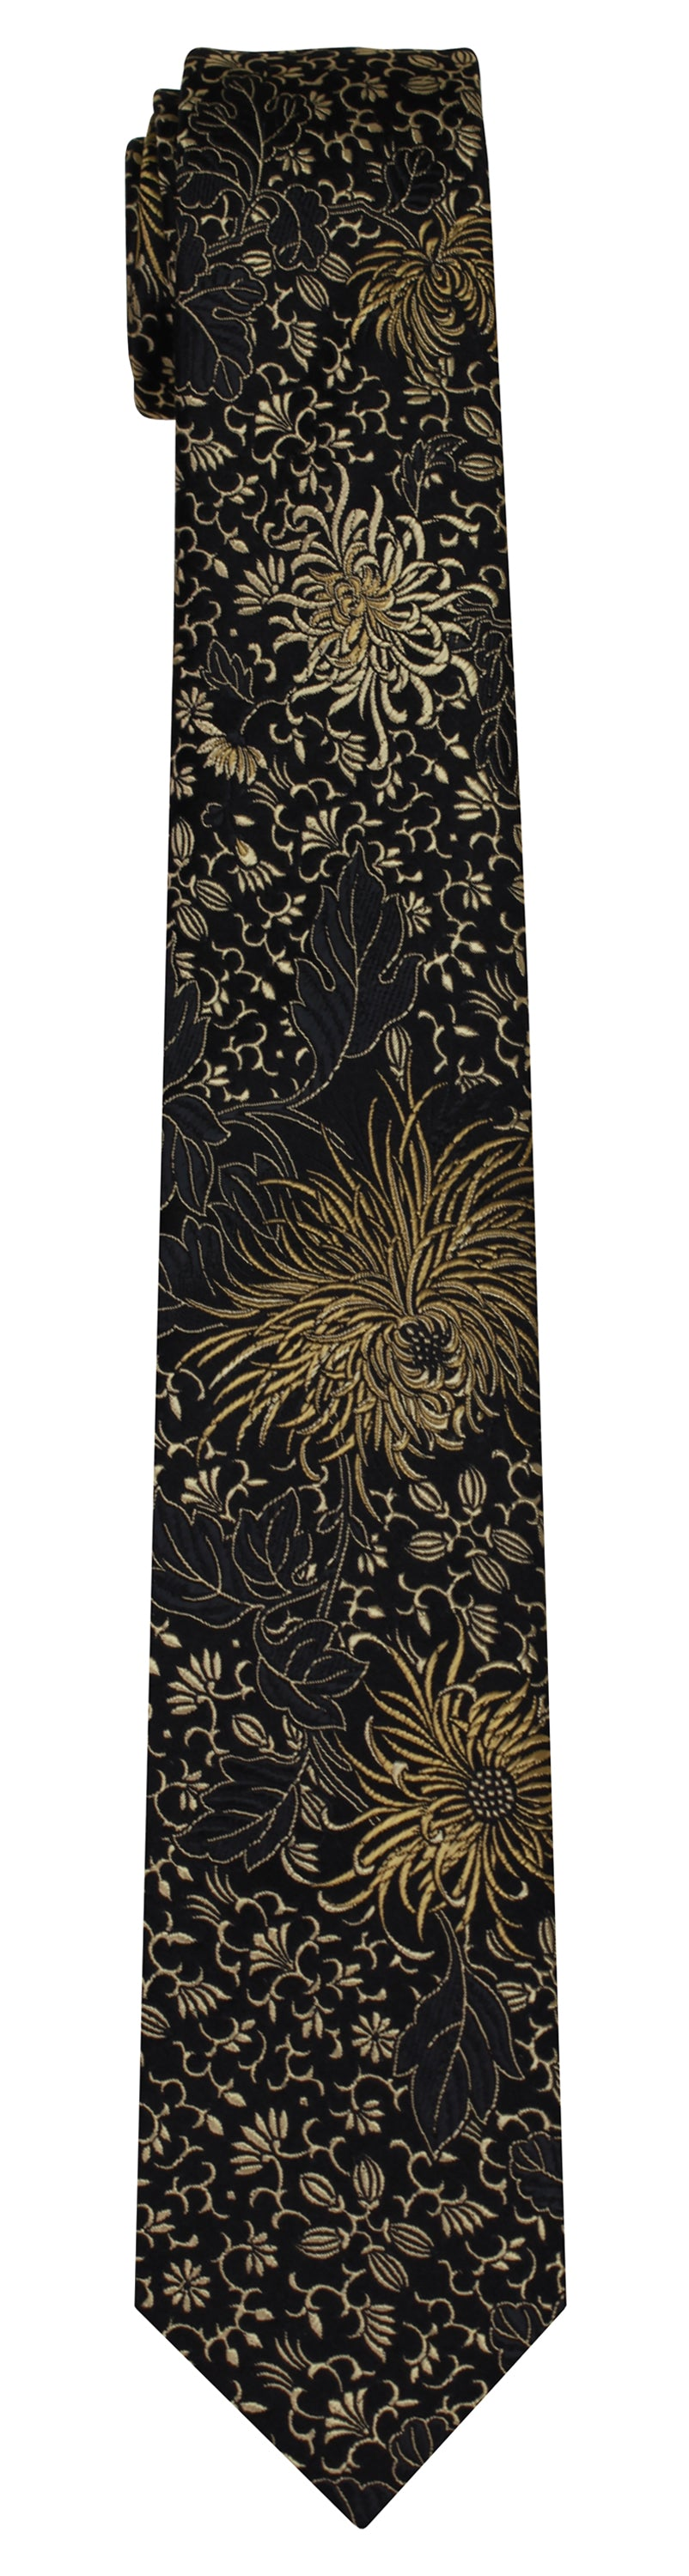 Mimi Fong Leaf & Mum Tie in Black